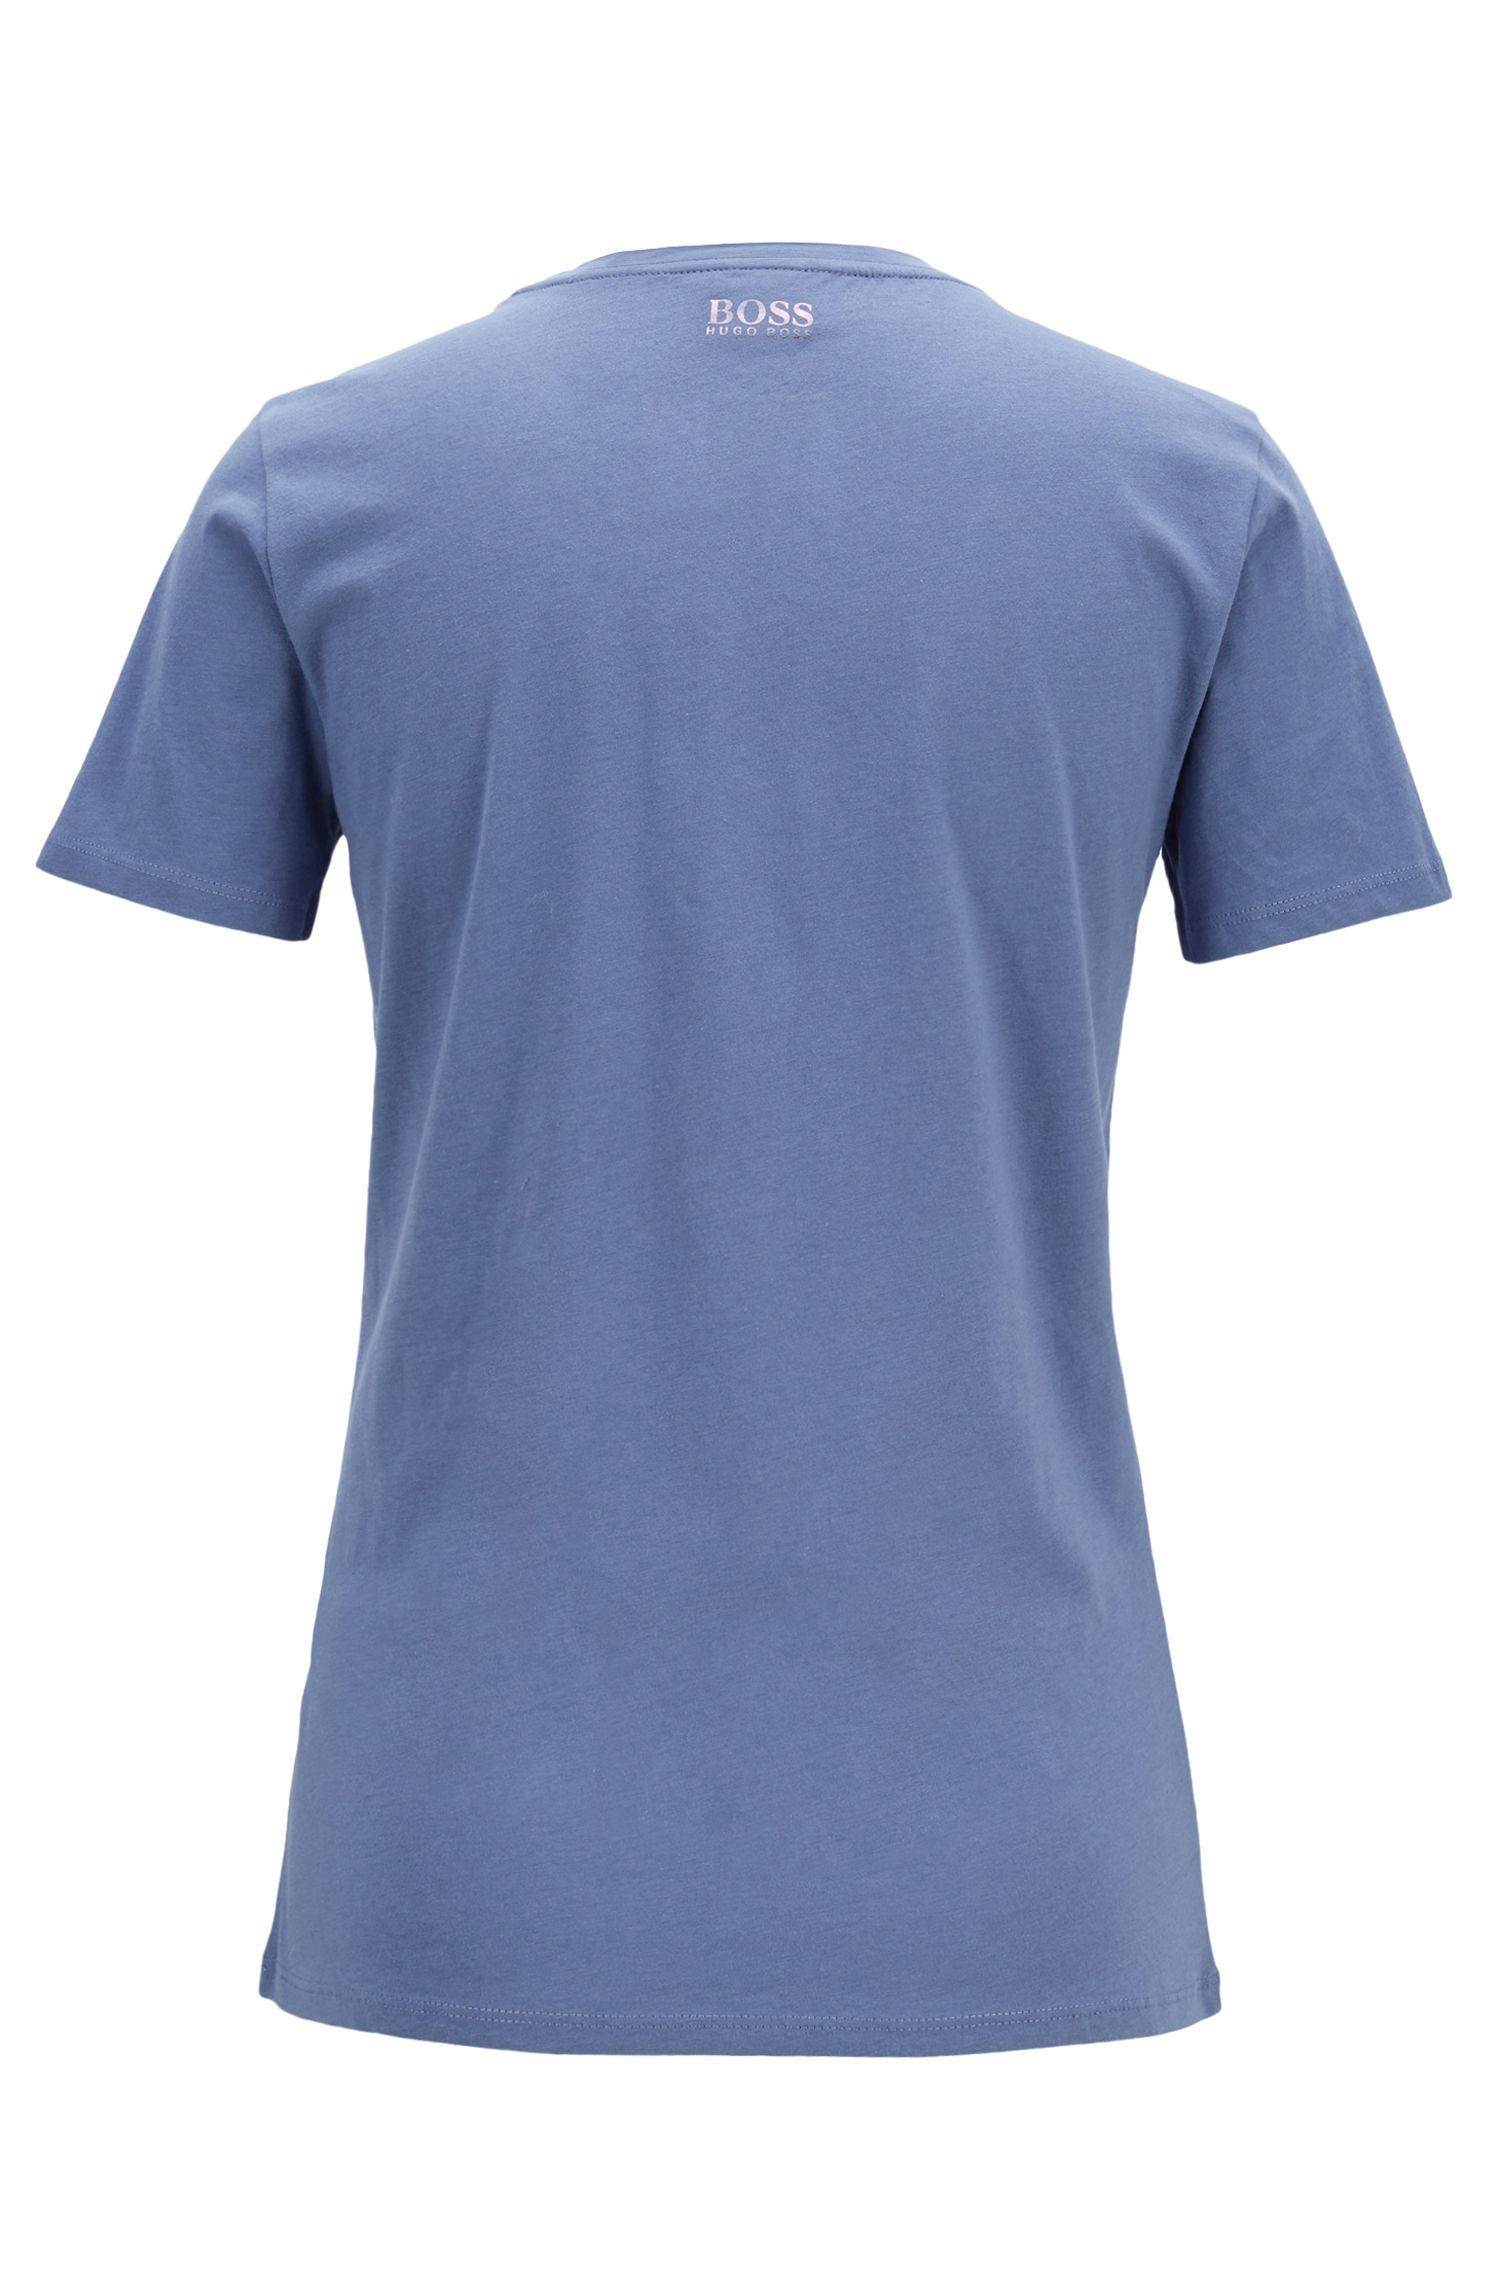 Cotton-jersey T-shirt with iridescent logo print, Blue